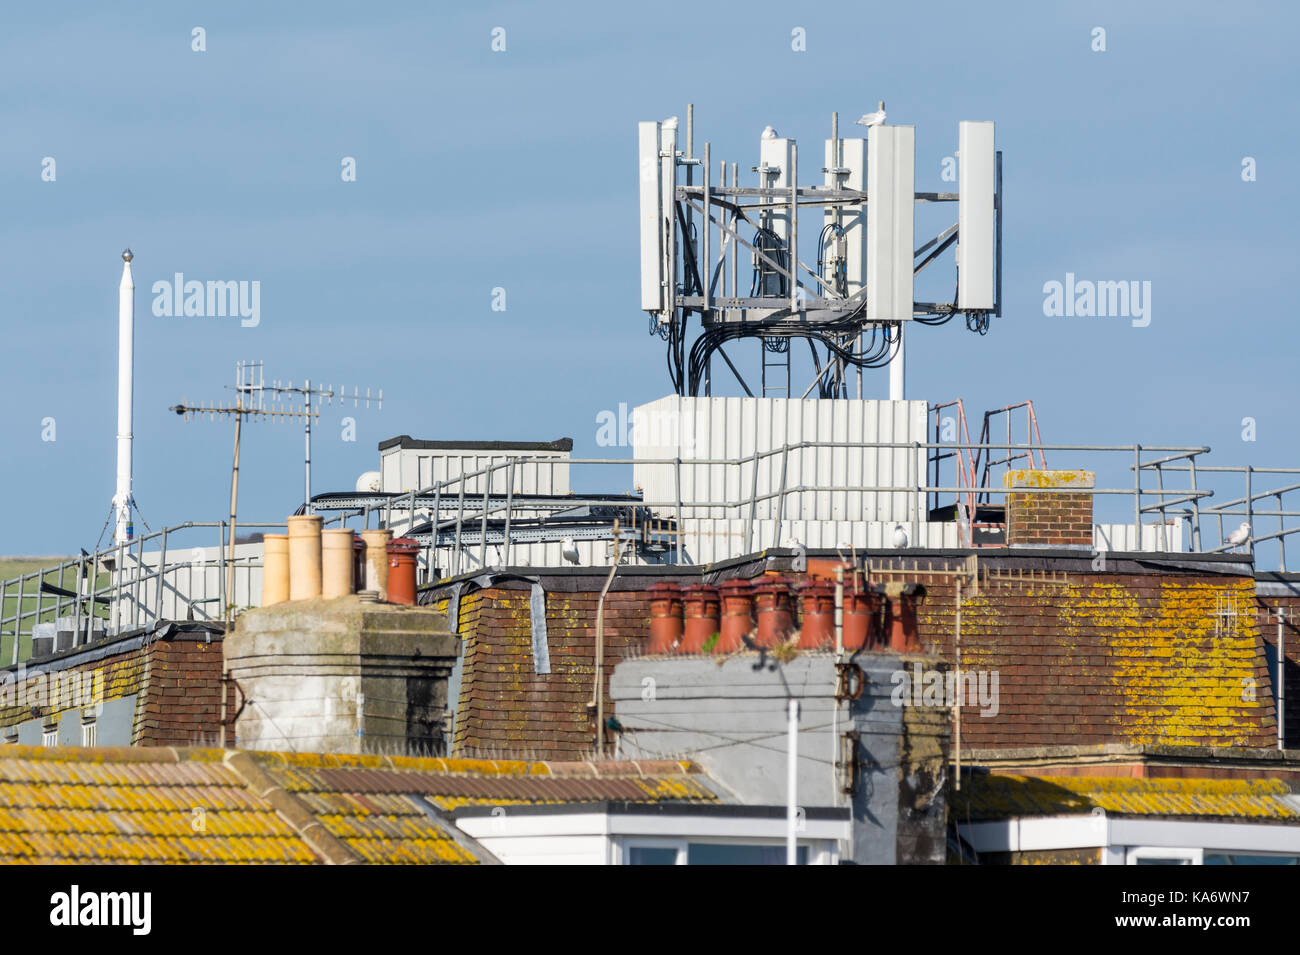 Mobile phone masts in the UK. Cell tower antennas for mobile network in the UK. - Stock Image